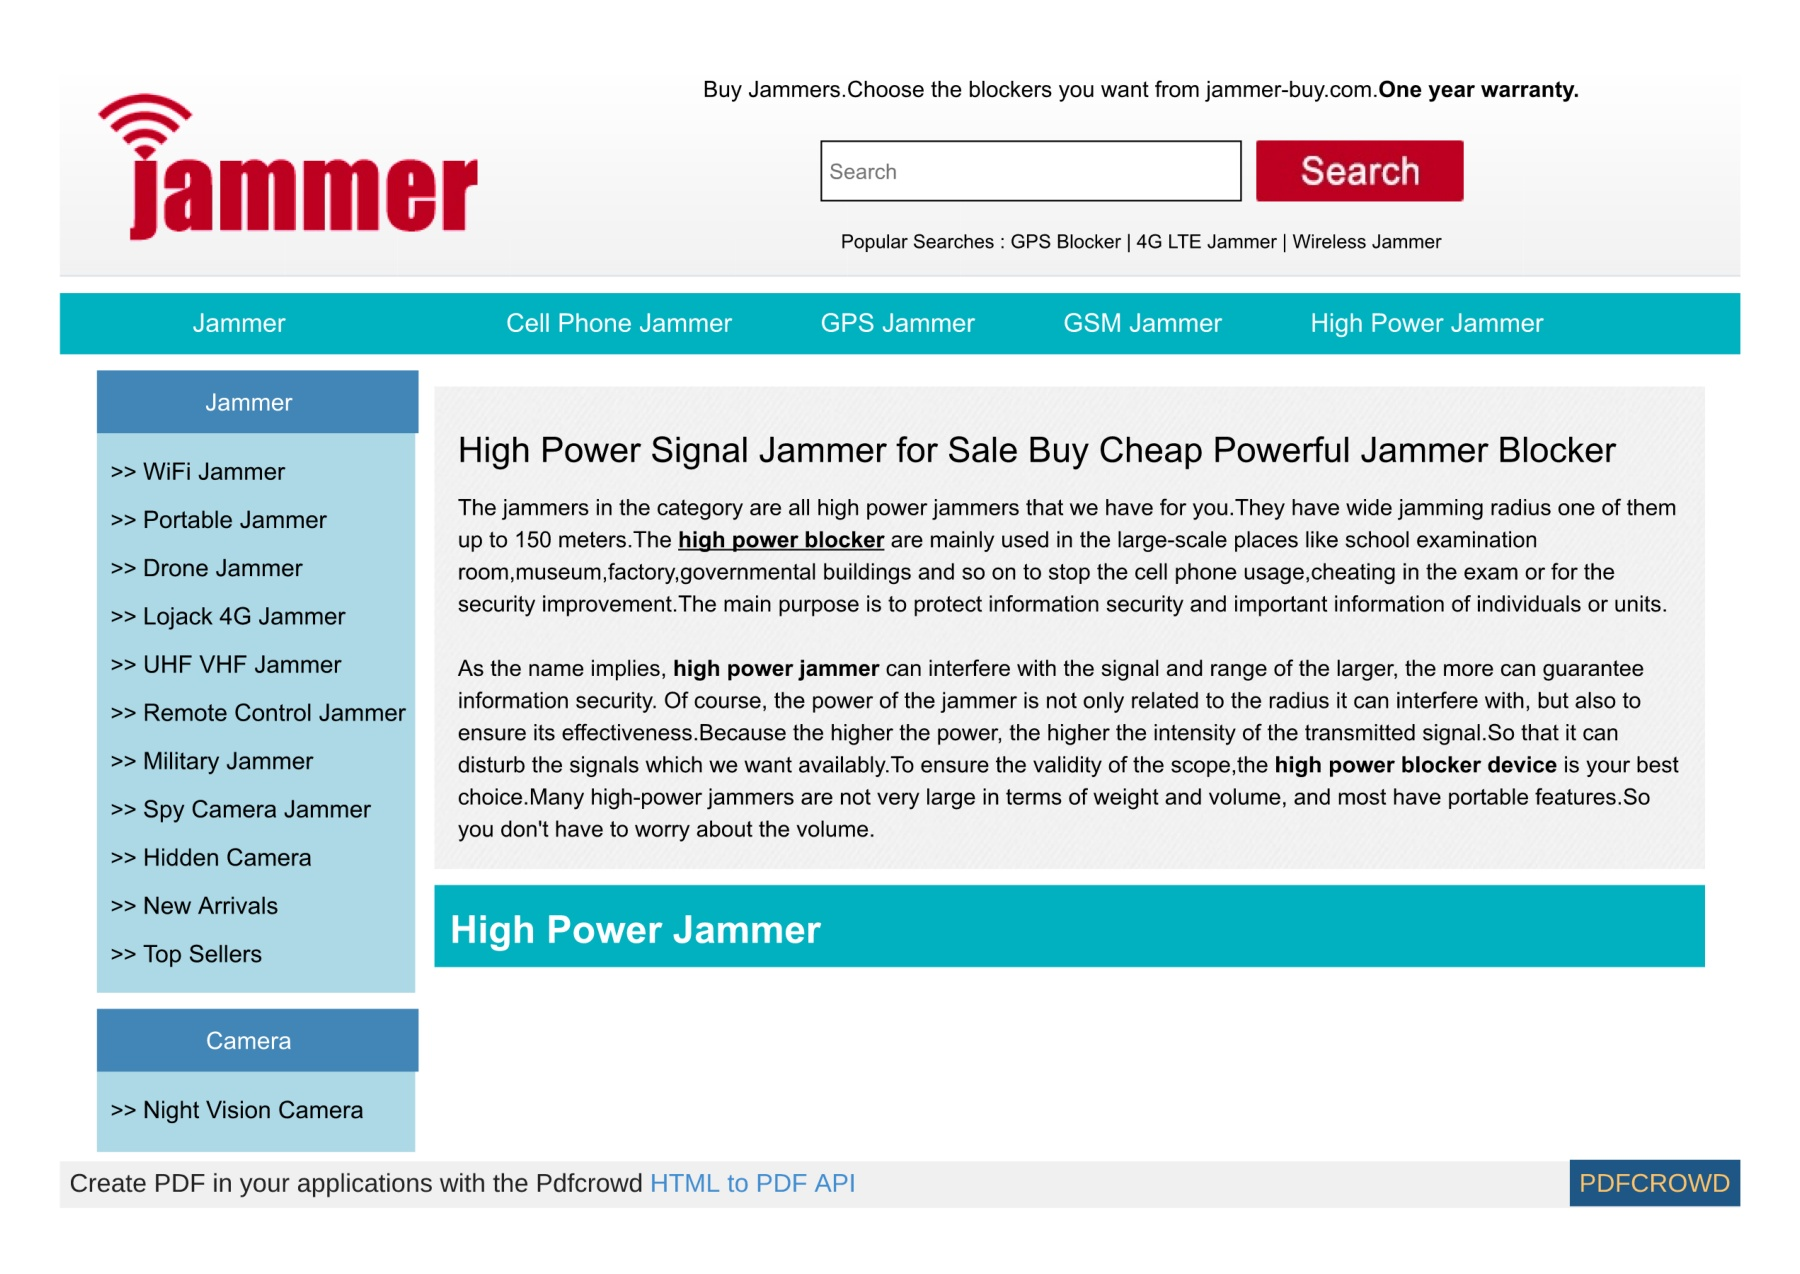 high power jammer device Pages 1 - 7 - Text Version | AnyFlip